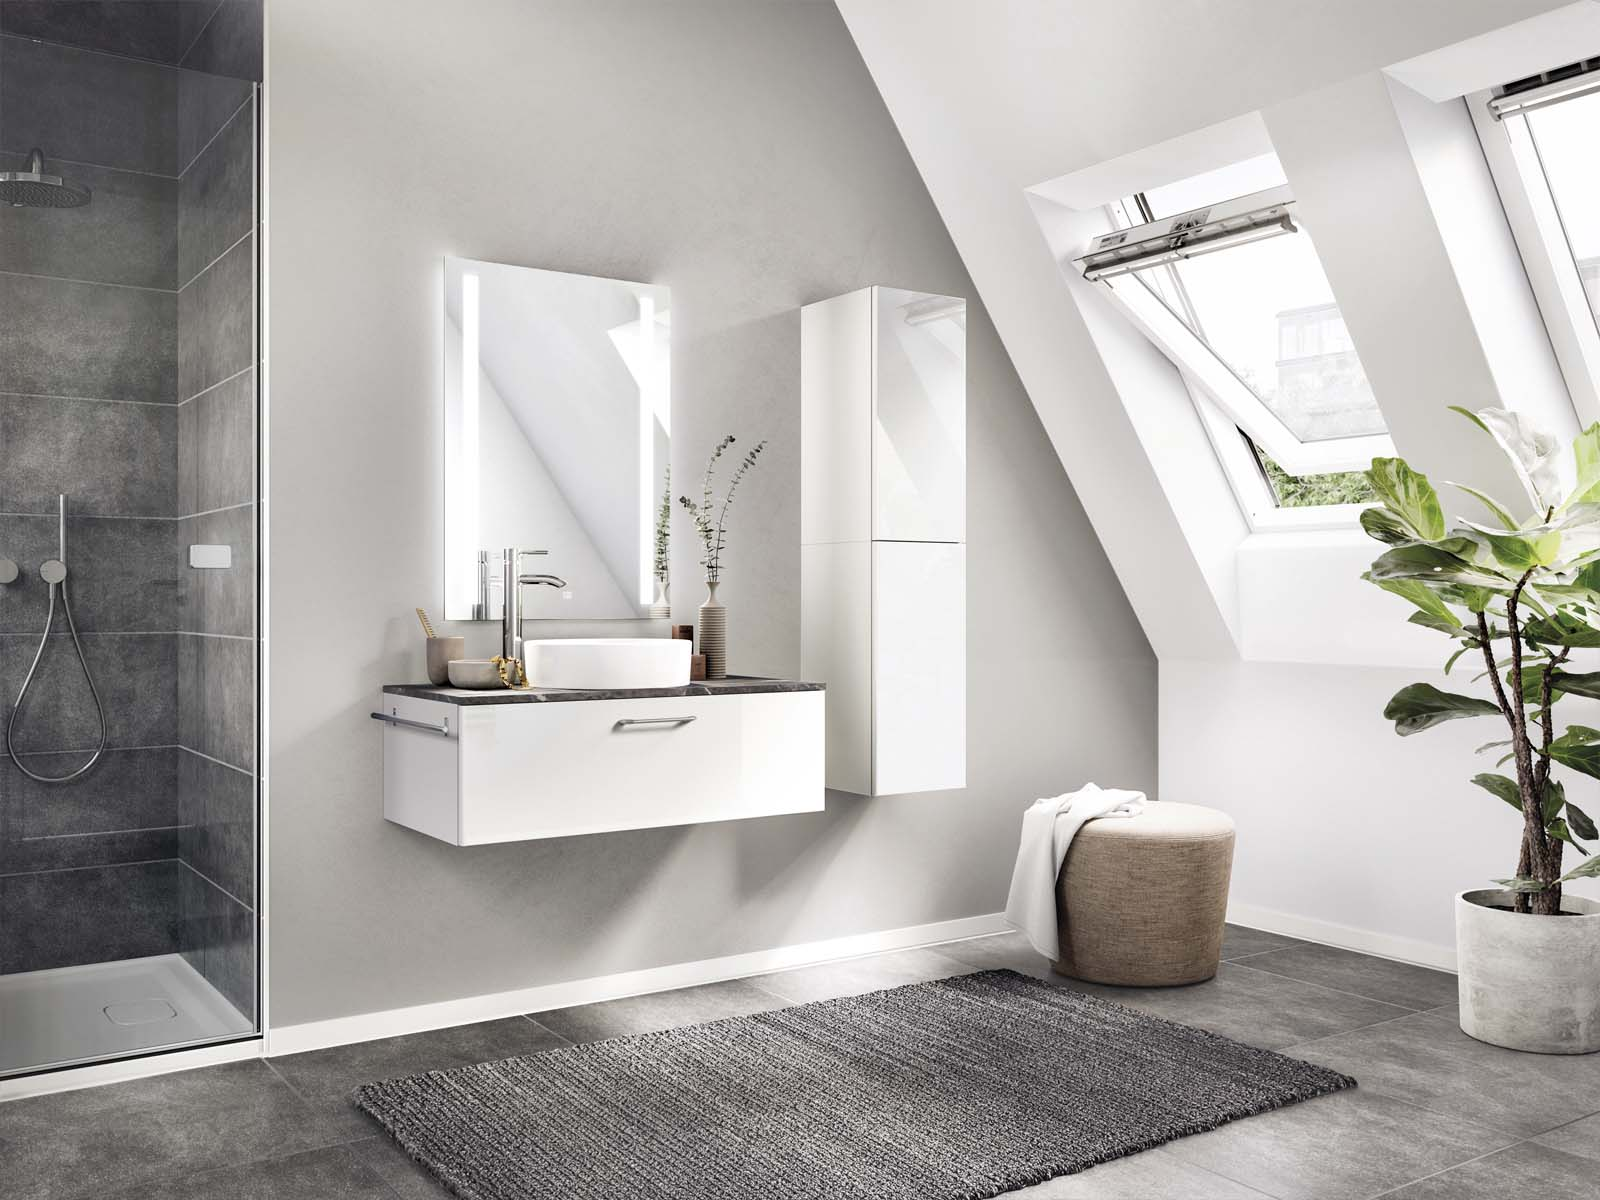 Küchentime Lux 819 - Bathroom